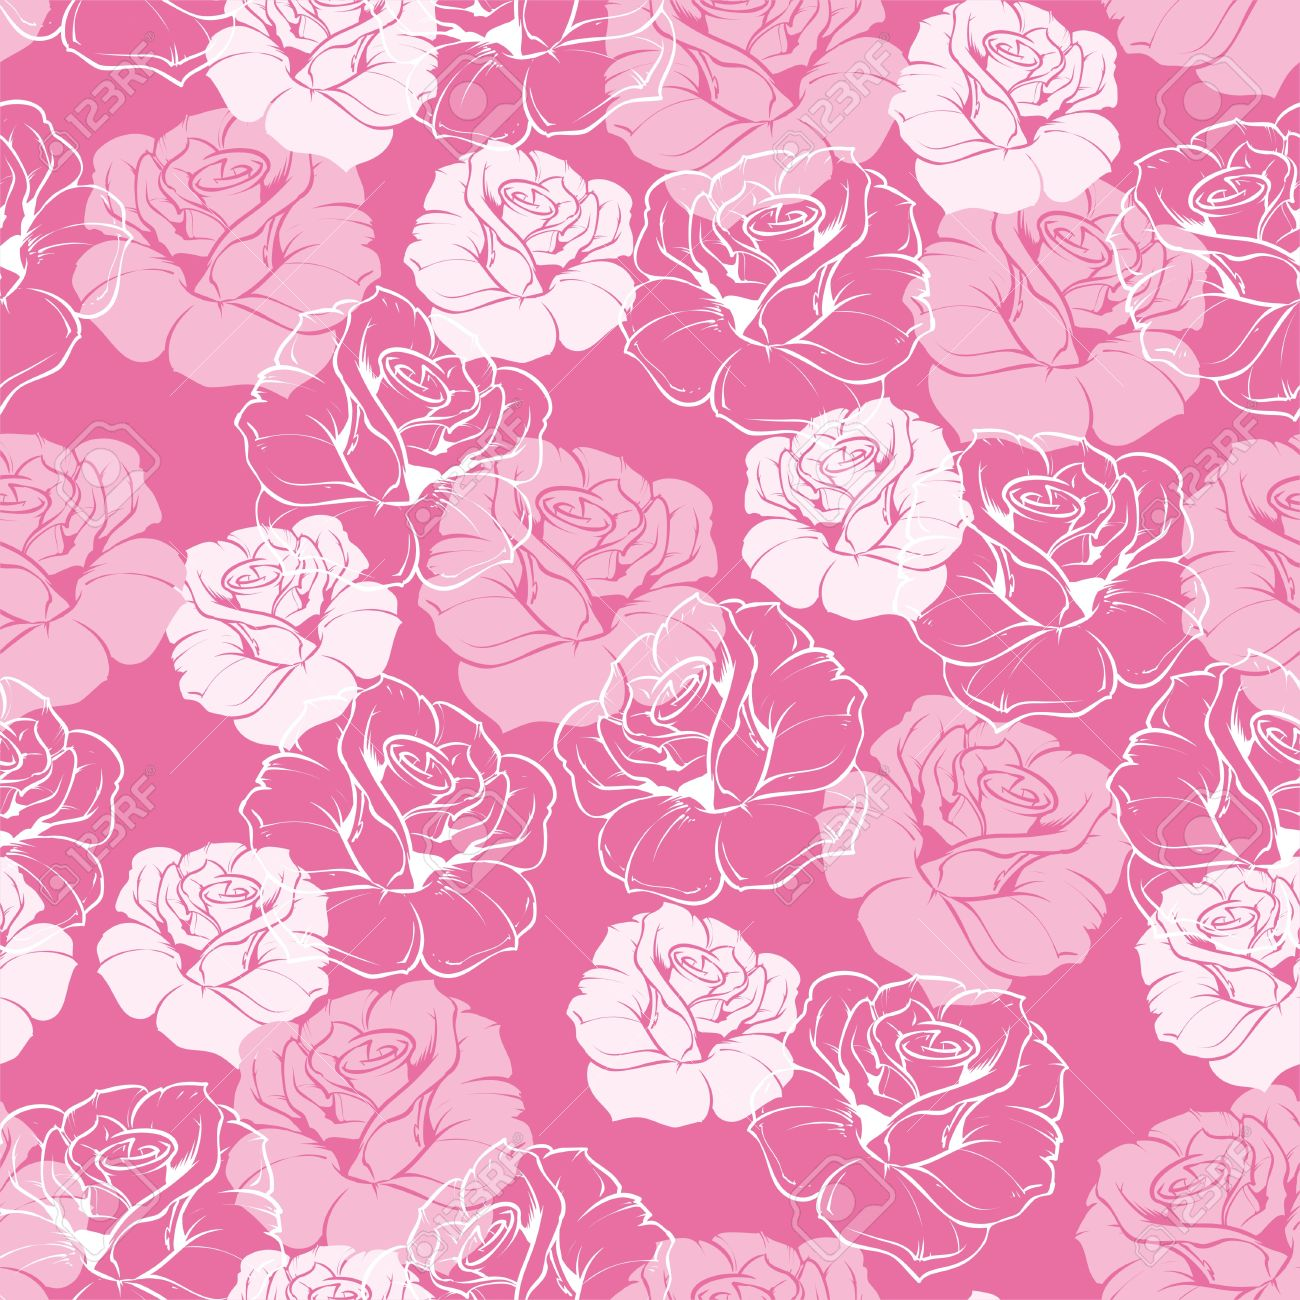 Seamless Floral Pattern With Pink And White Roses On Sweet Baby